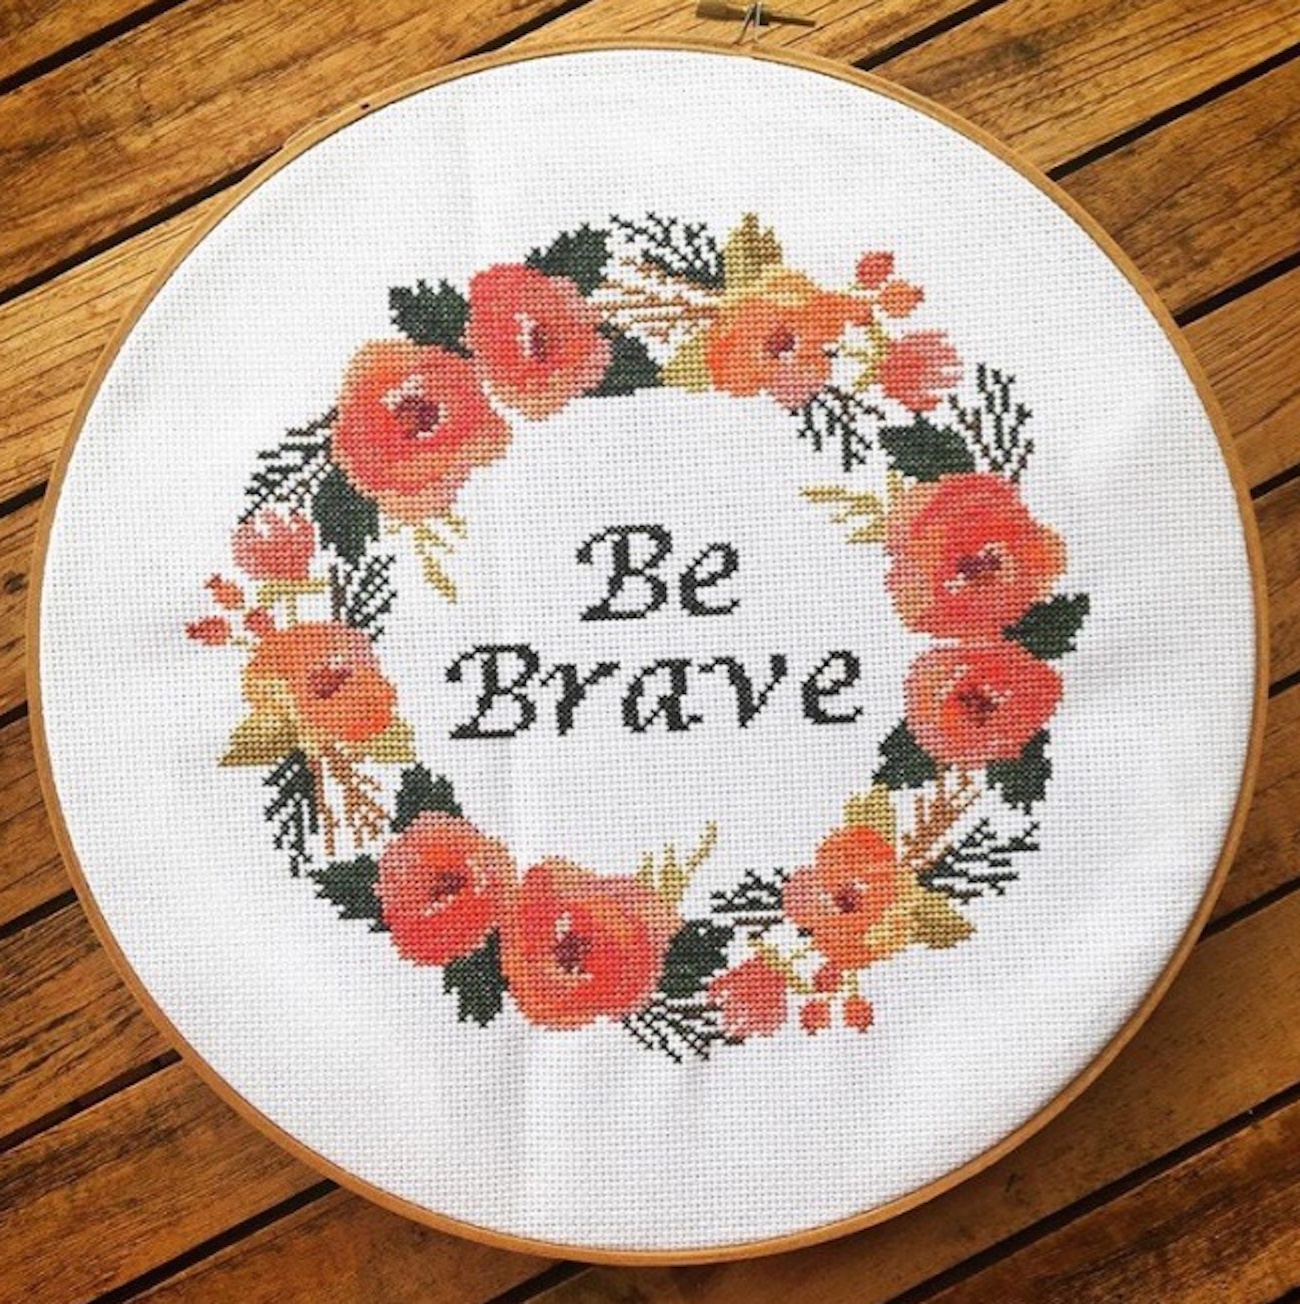 Cross-stitched framed image of the words be brave surrounded by a ring of flowers